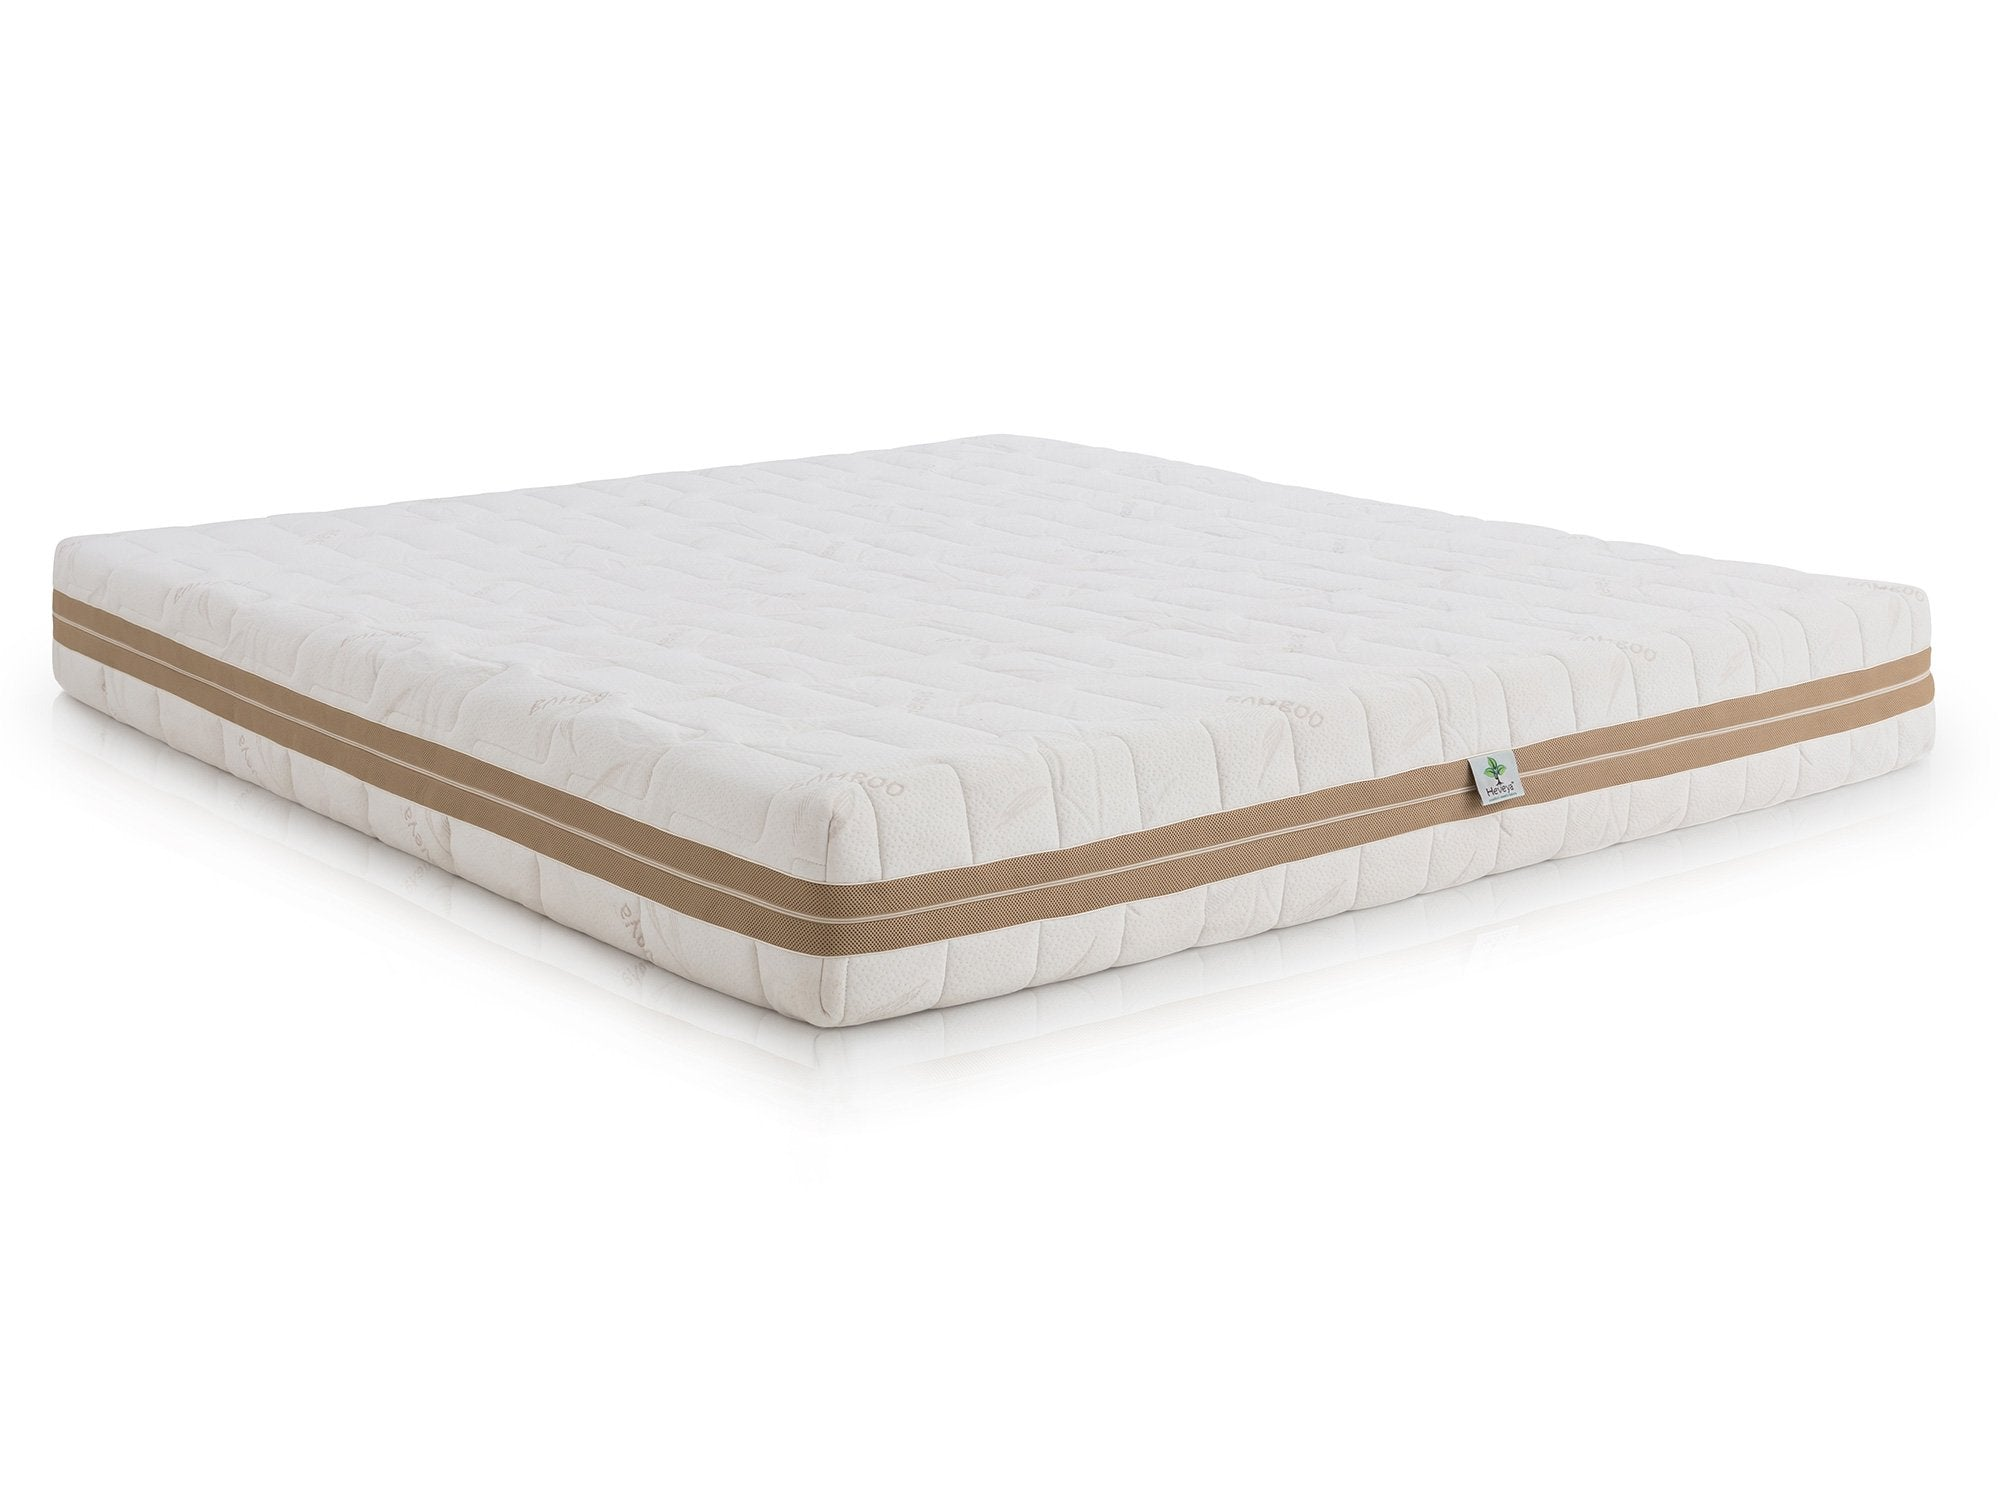 Heveya natural organic latex mattress II